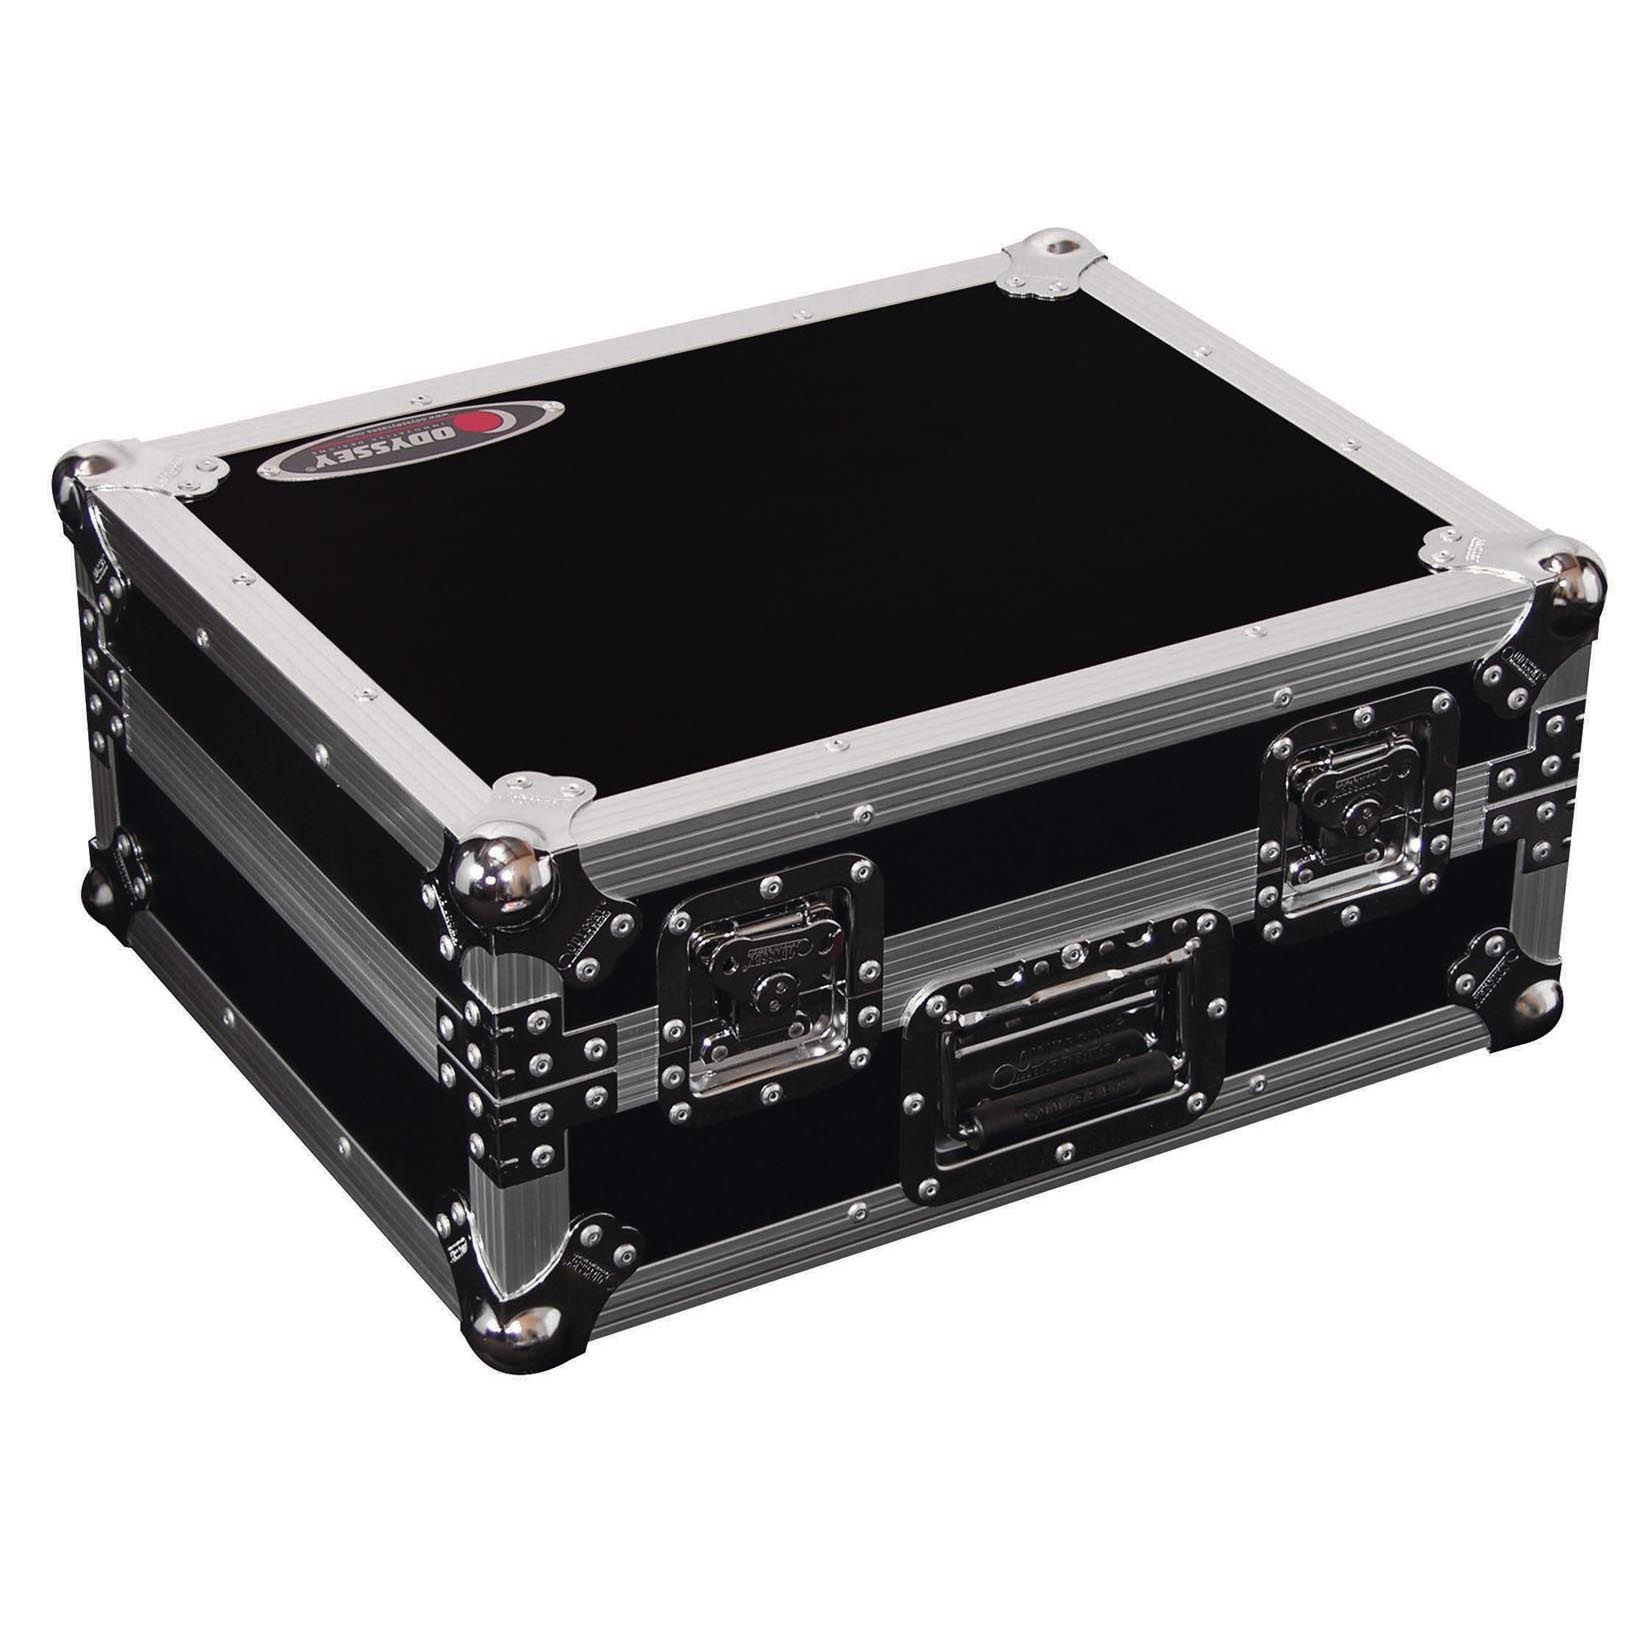 Odyssey Flite Zone 1200 Turntable Case Black by Odyssey